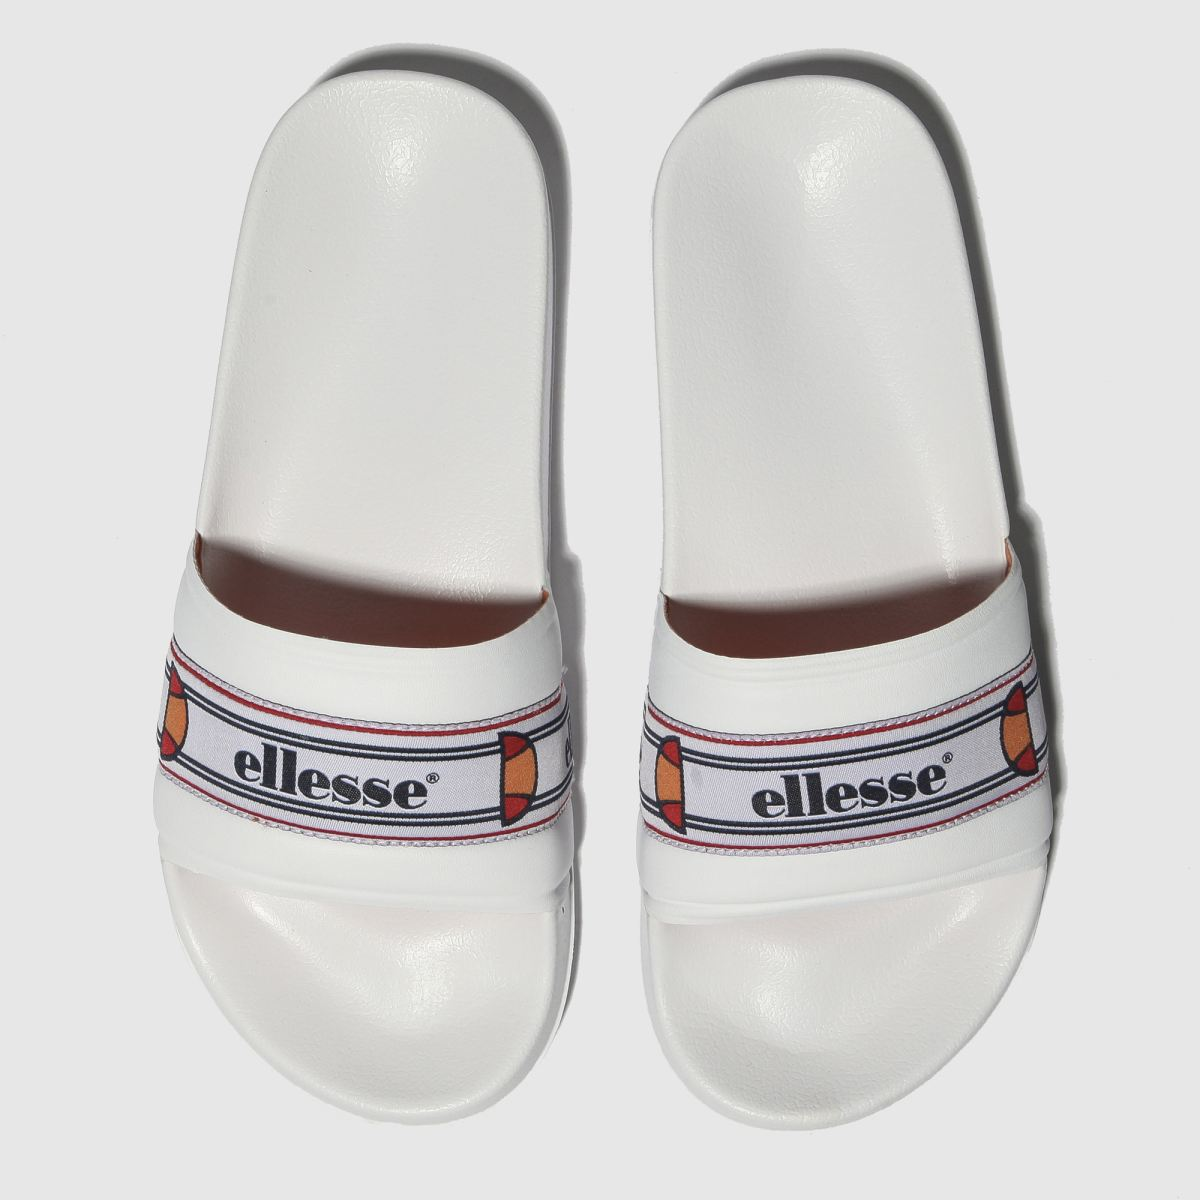 Ellesse White Filippo Tp Sandals